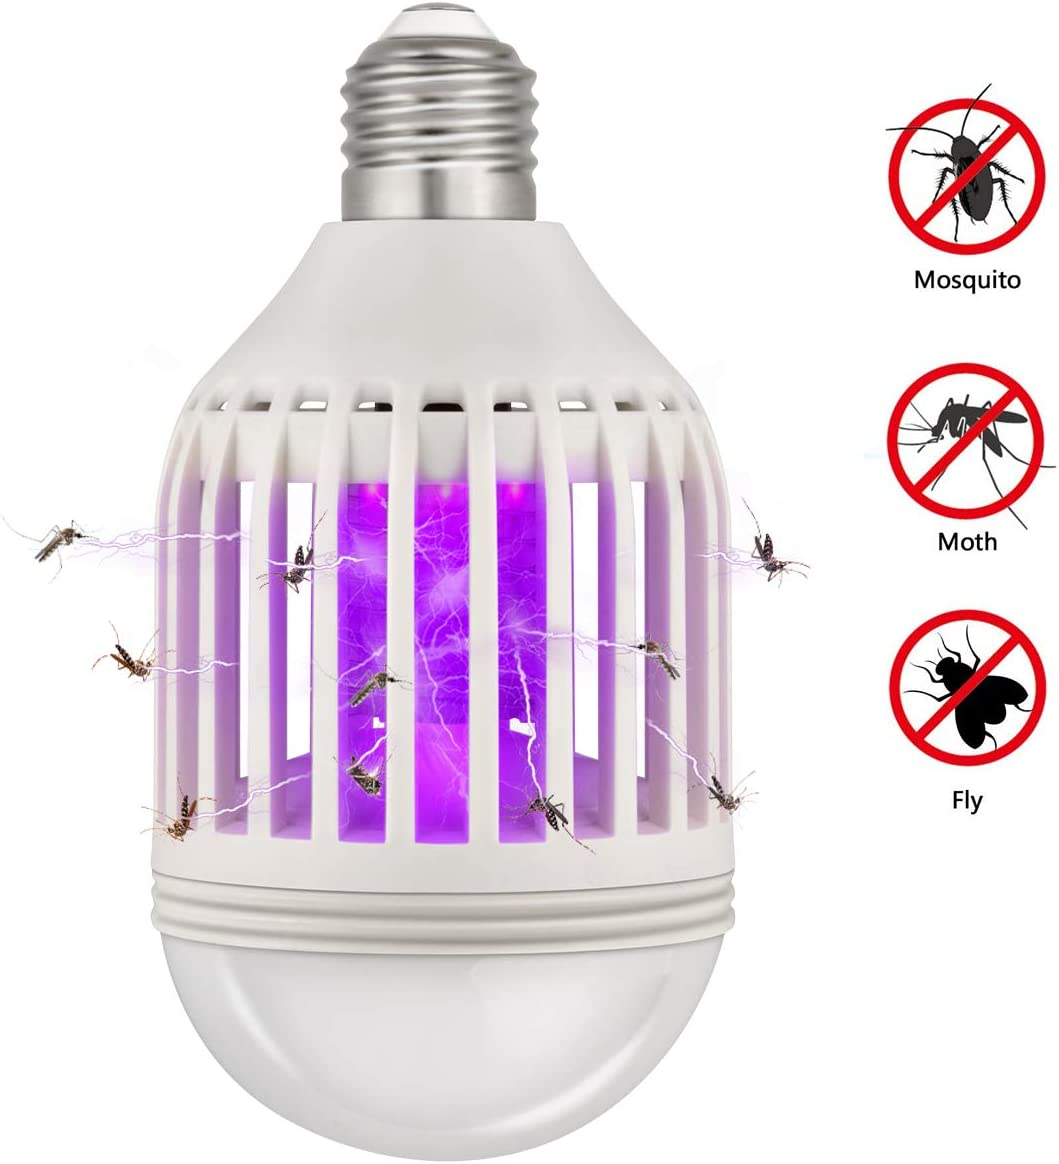 Free Amazon Promo Code 2020 for Bug Zapper Led Light Bulb 2 in 1